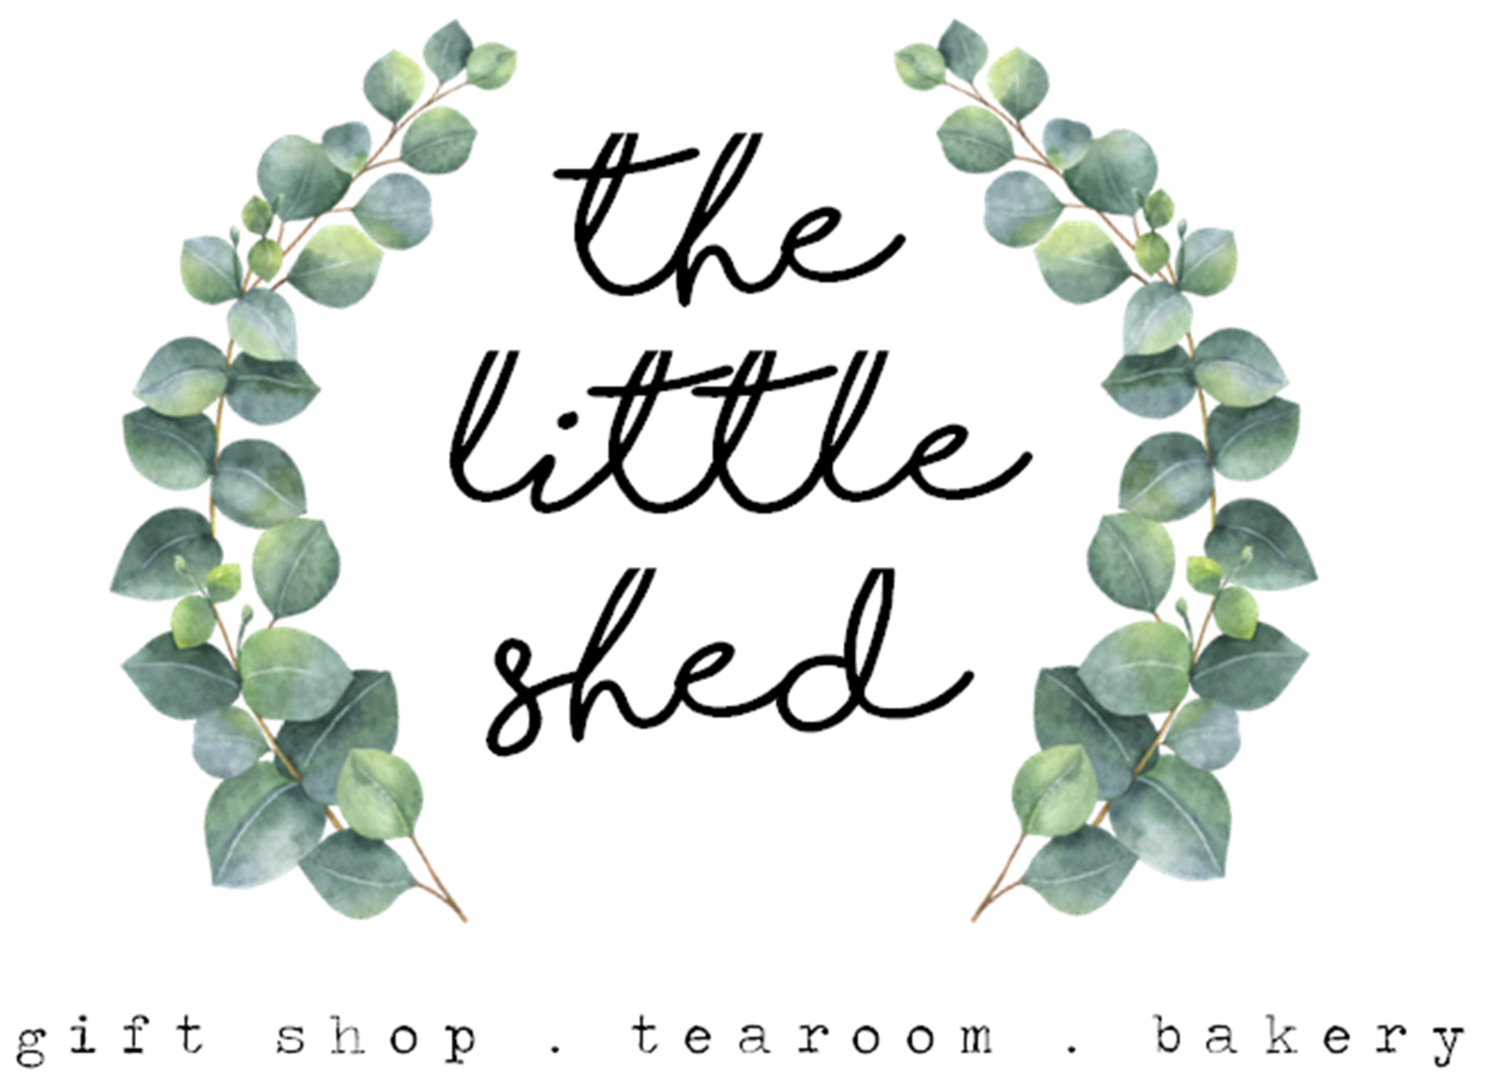 artwork stocked at the little shed in Allestree